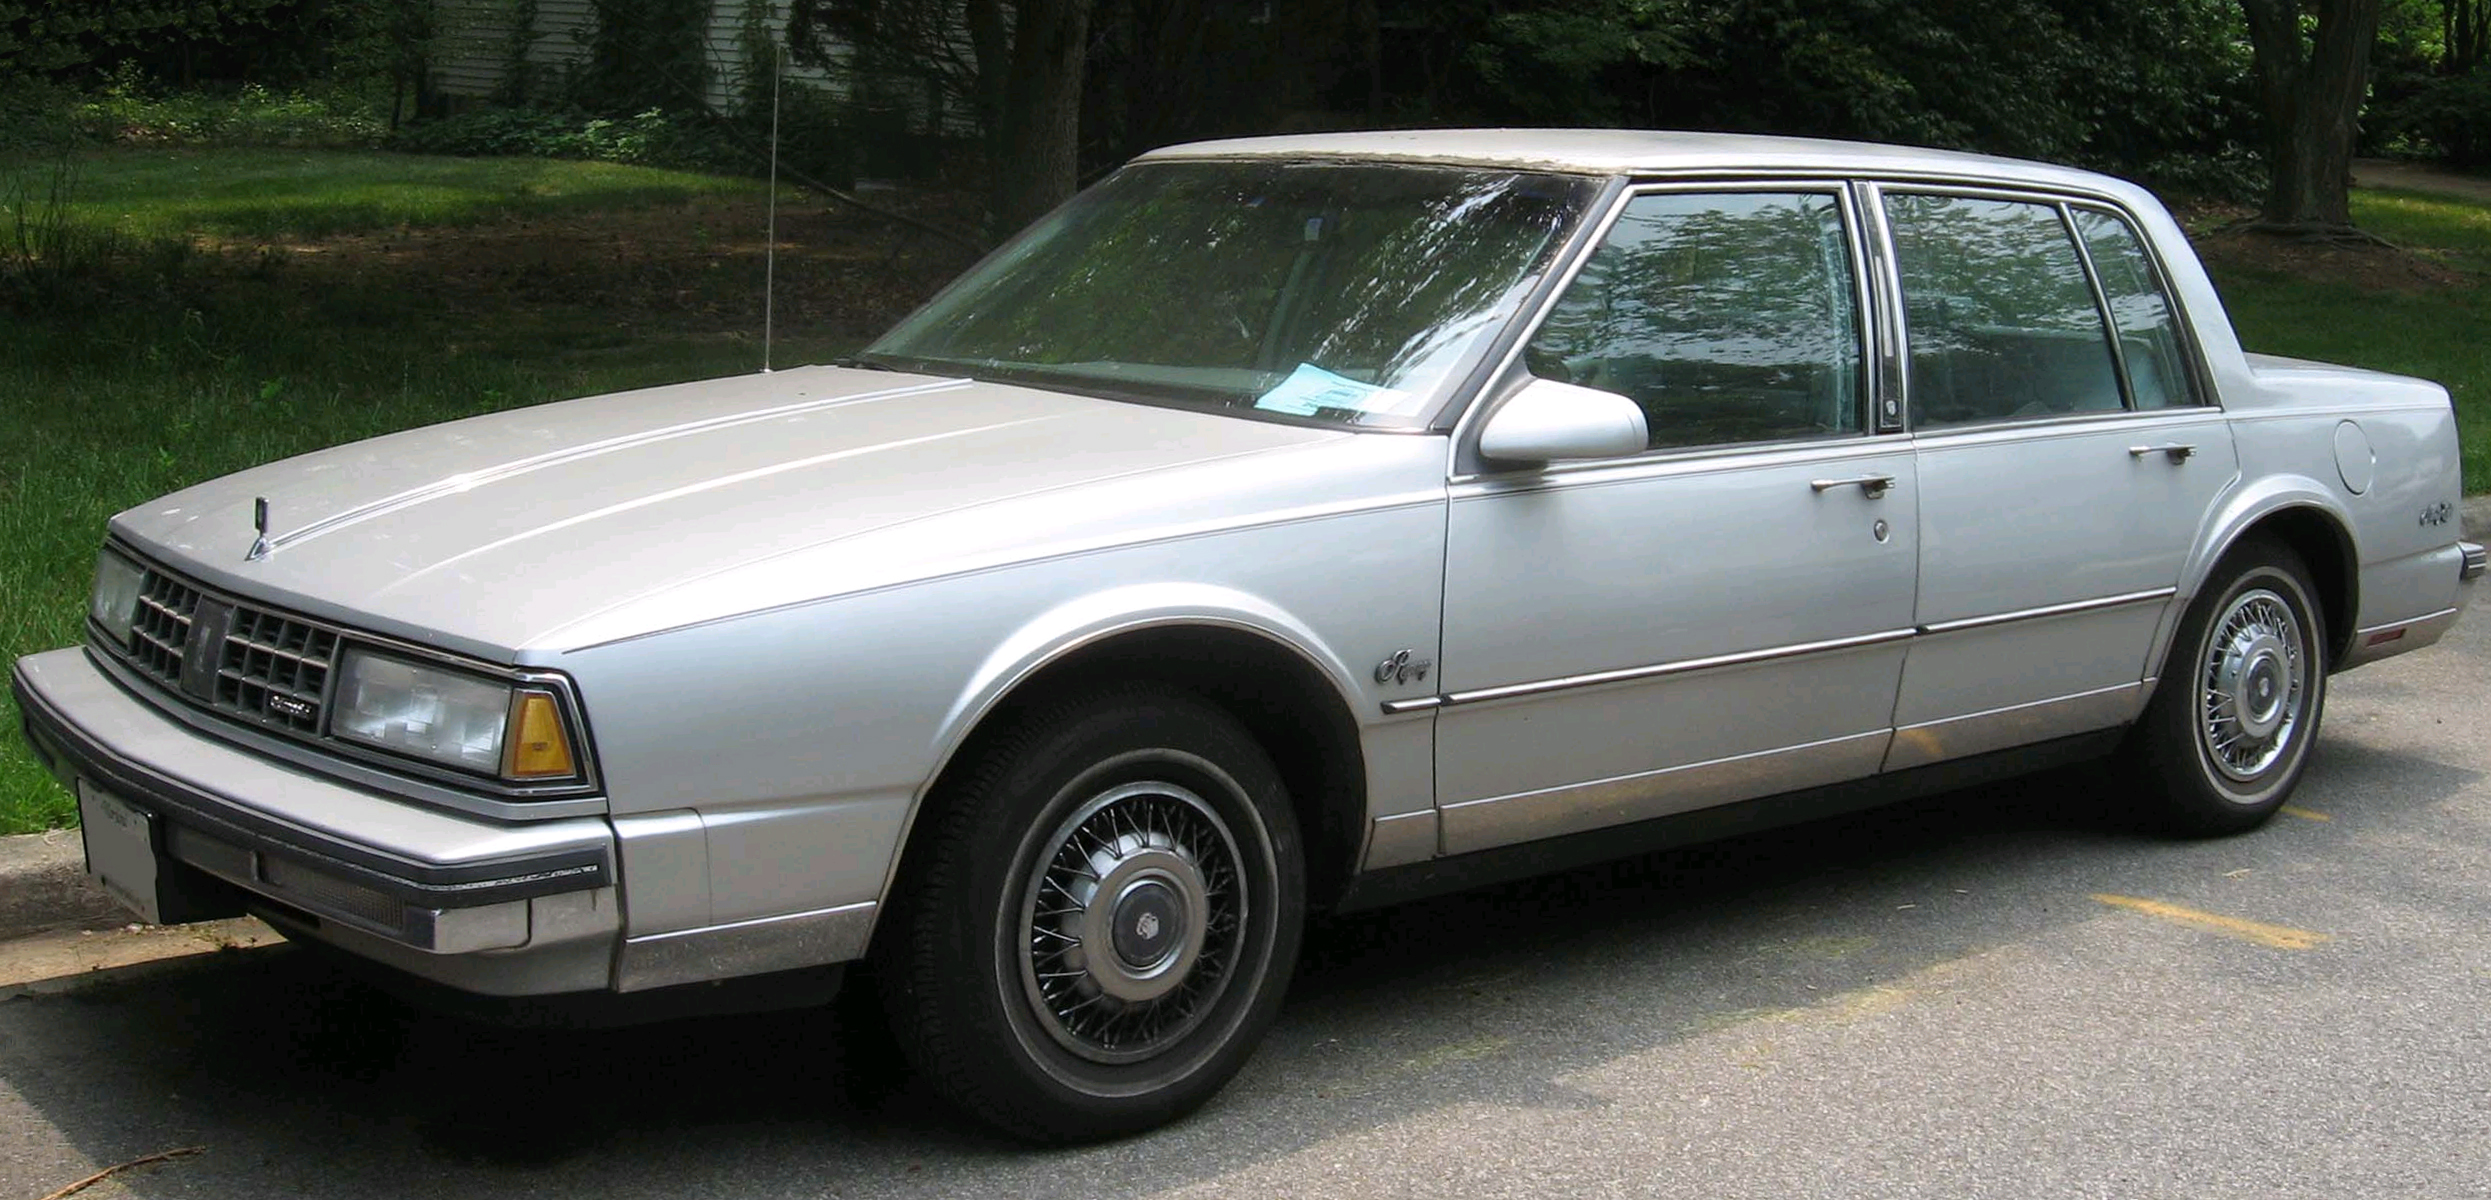 File:89-90 Oldsmobile 98 2.jpg